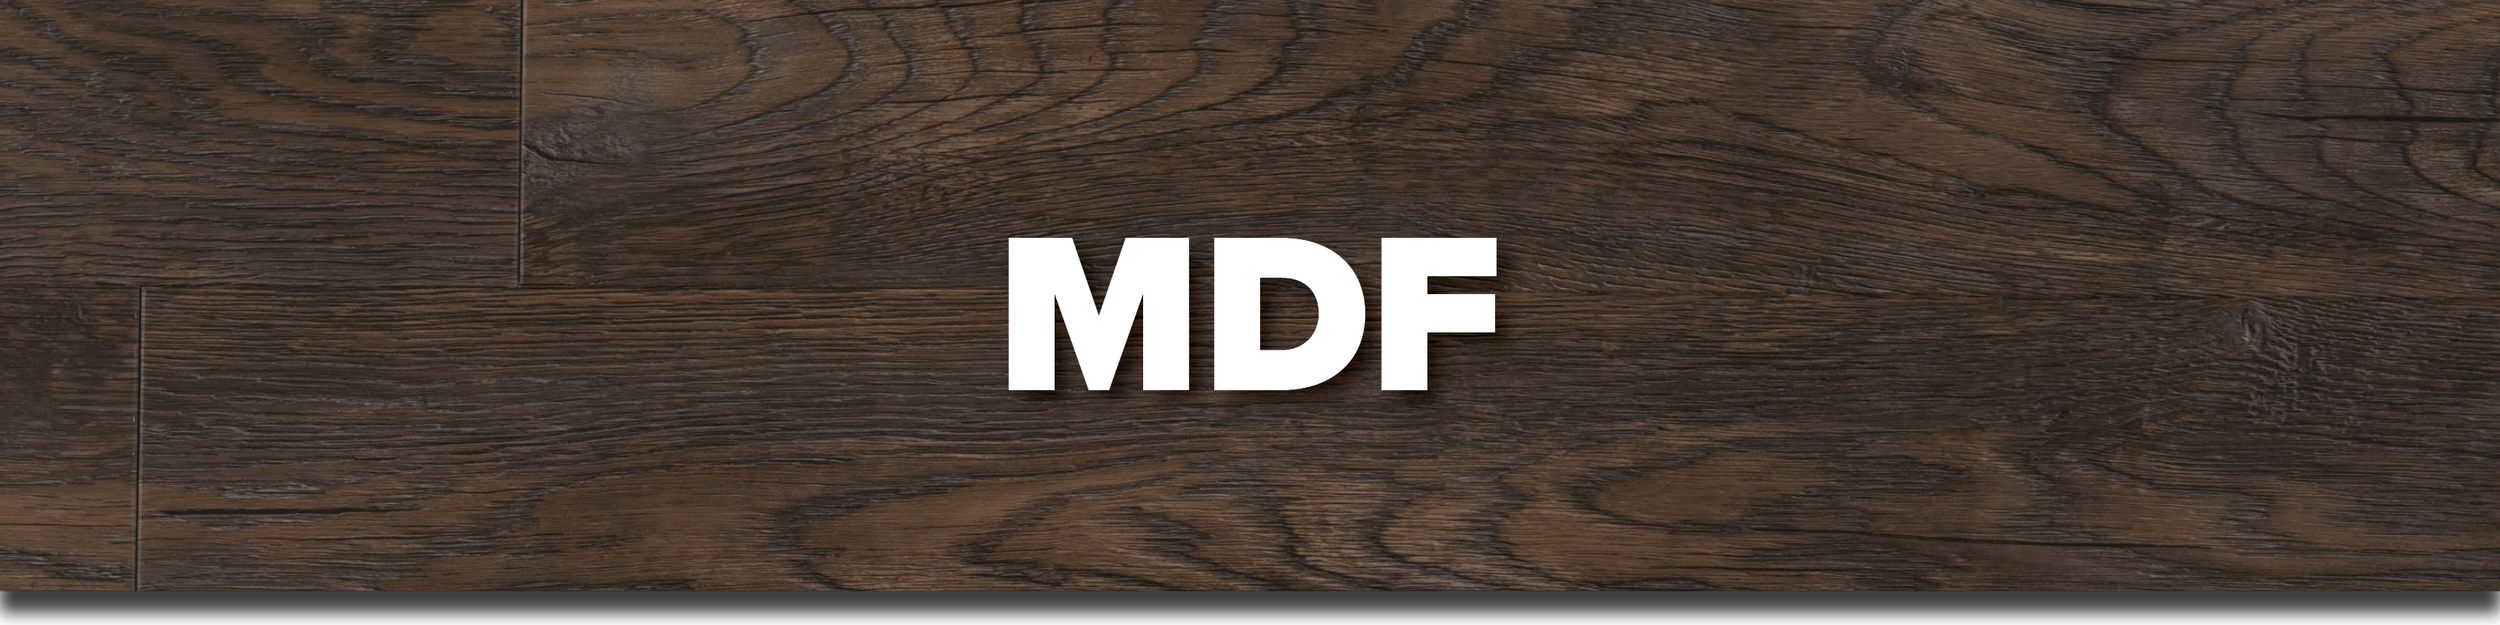 MDF.png